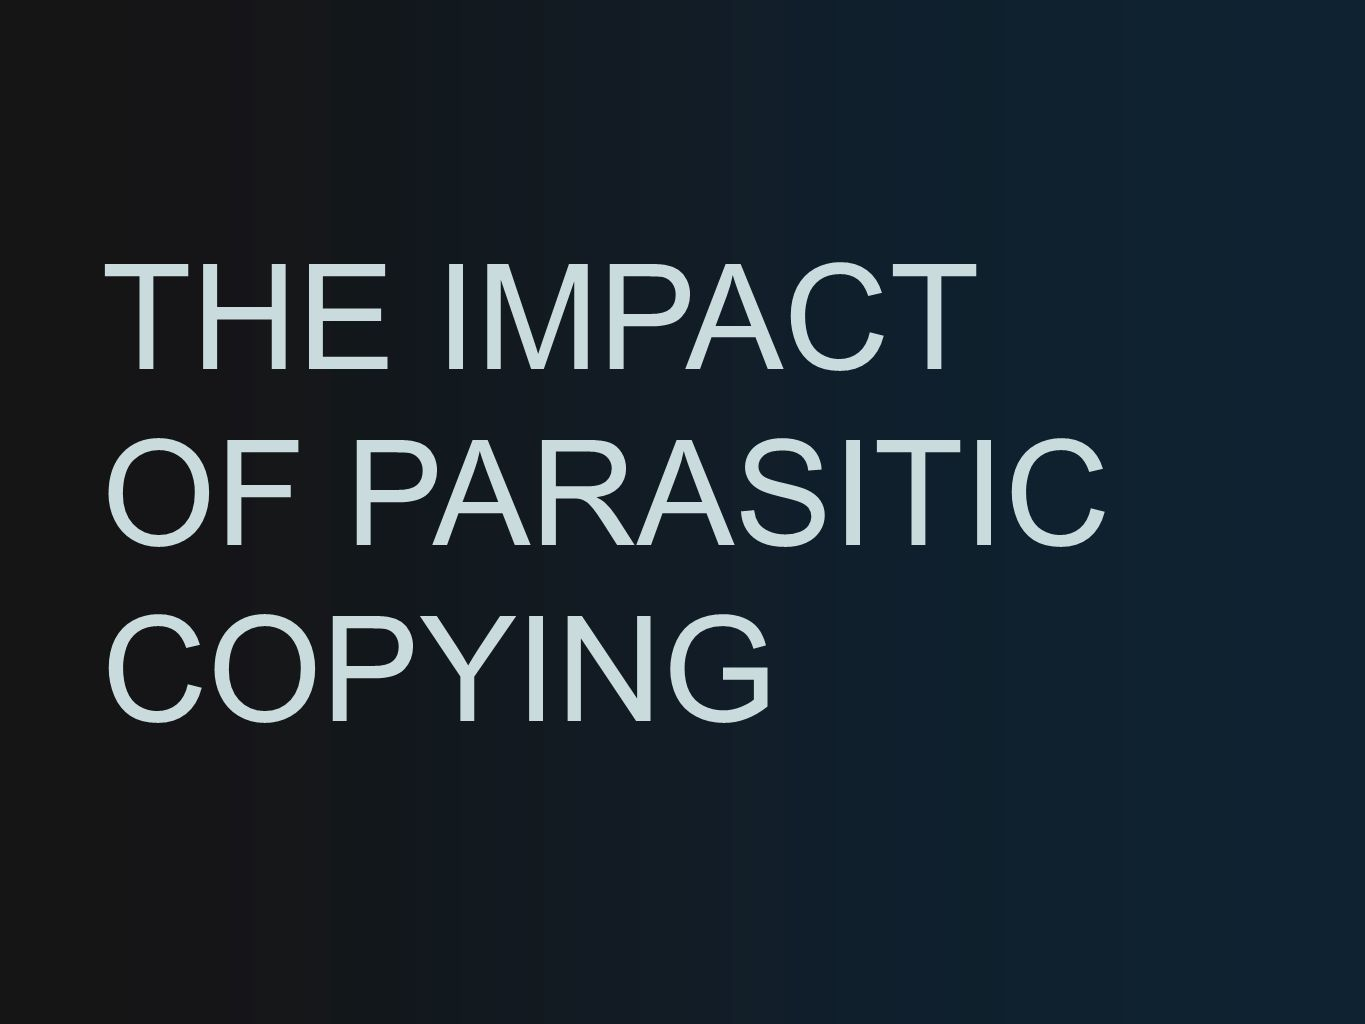 THE IMPACT OF PARASITIC COPYING